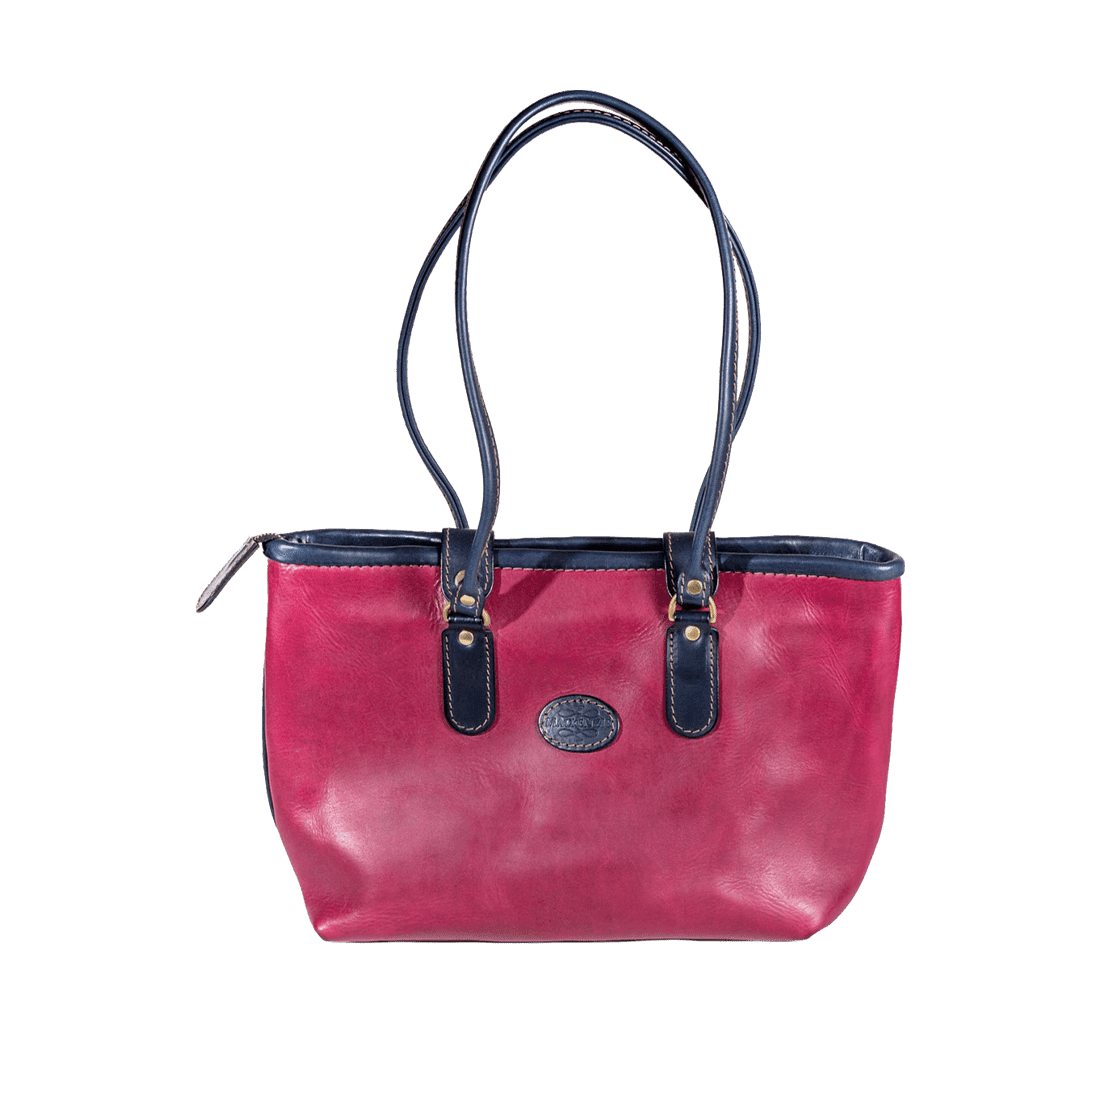 The business tote matt pink